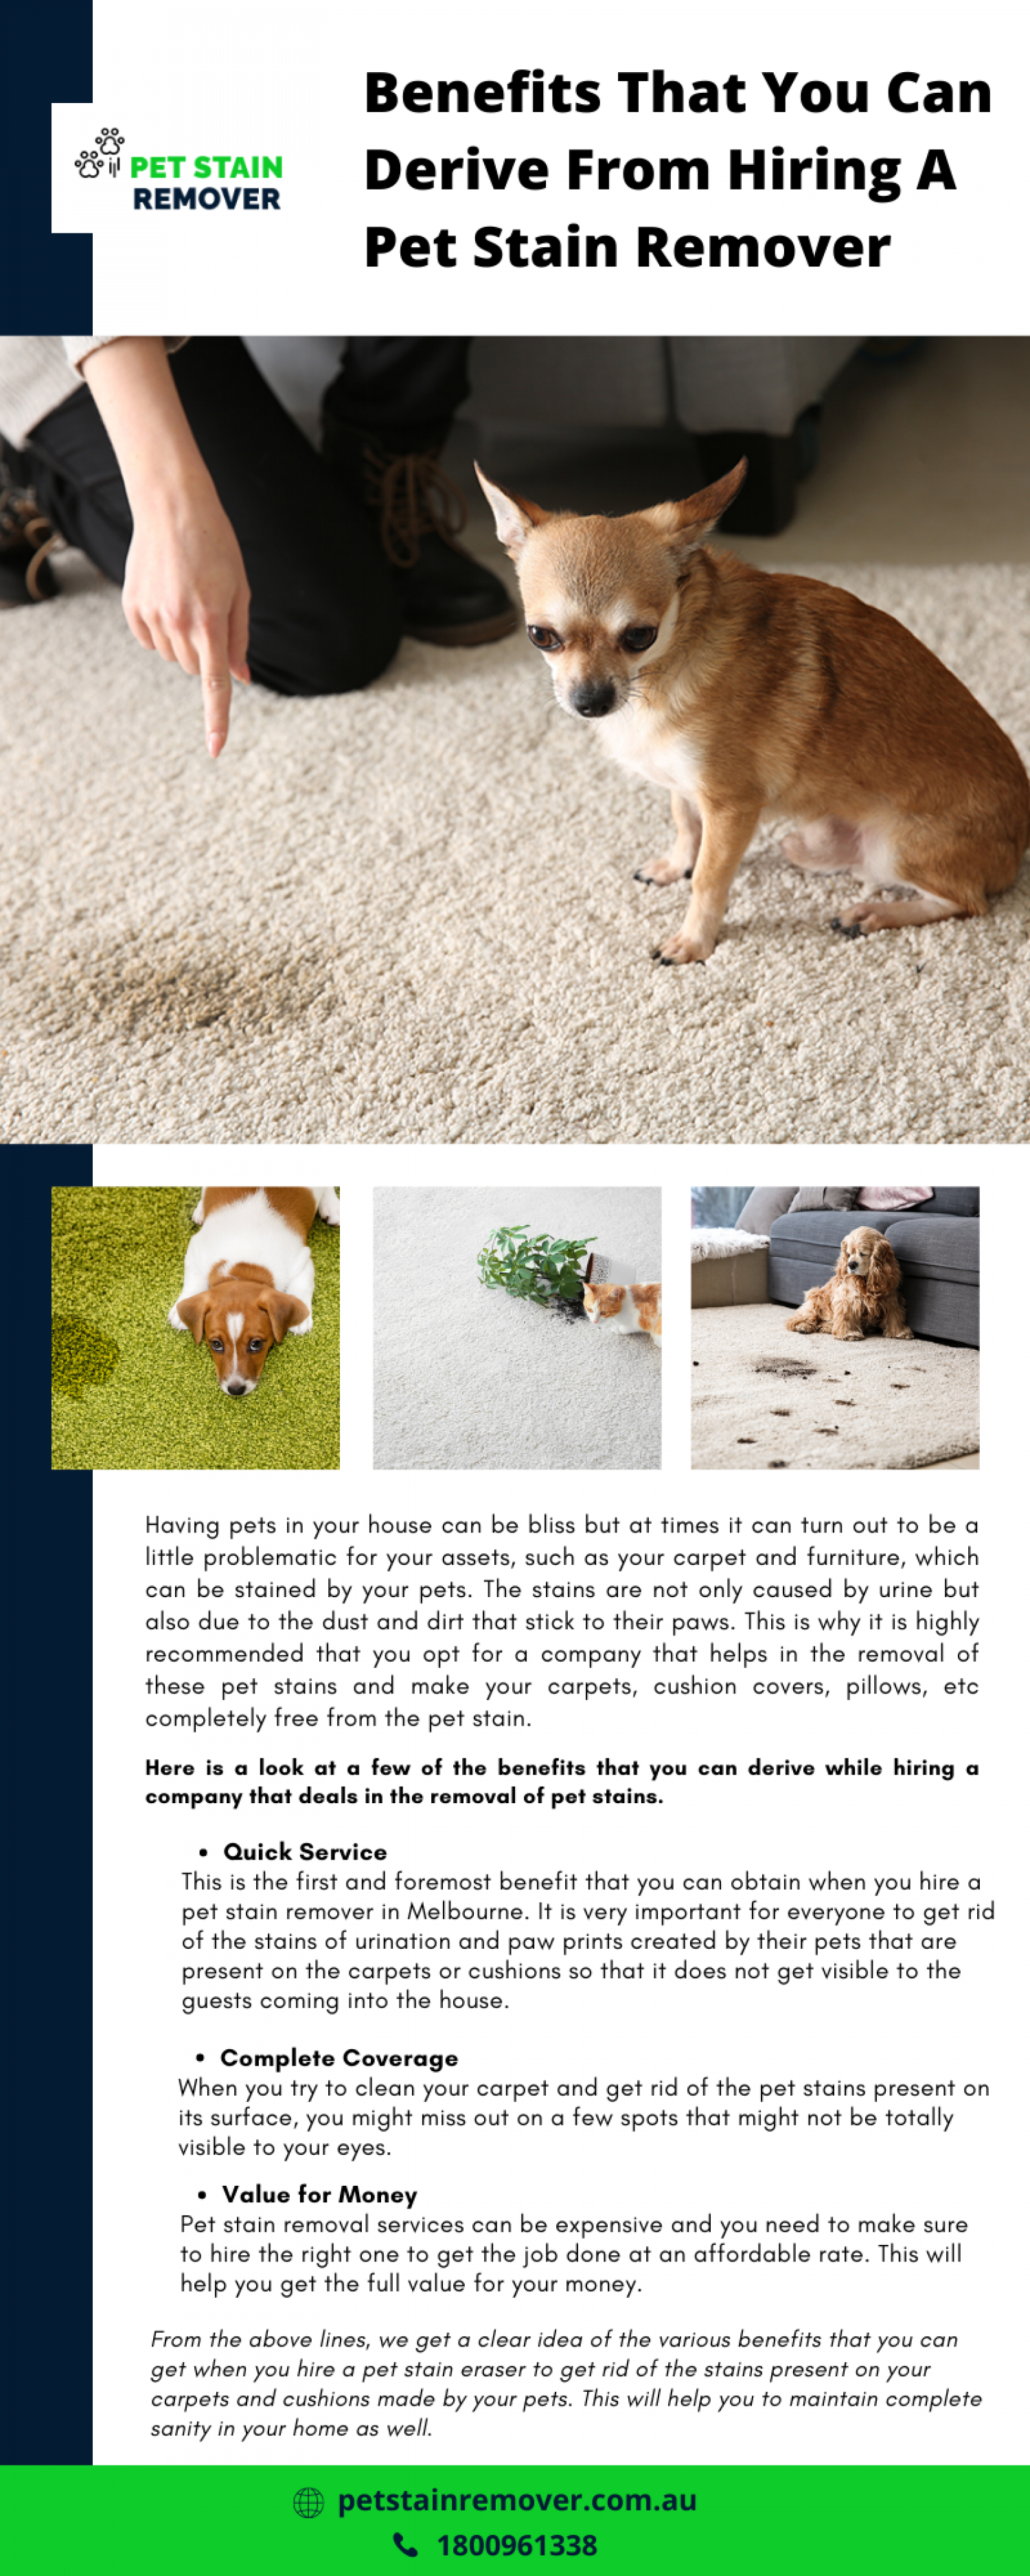 Benefits That You Can Derive From Hiring A Pet Stain Remover Infographic